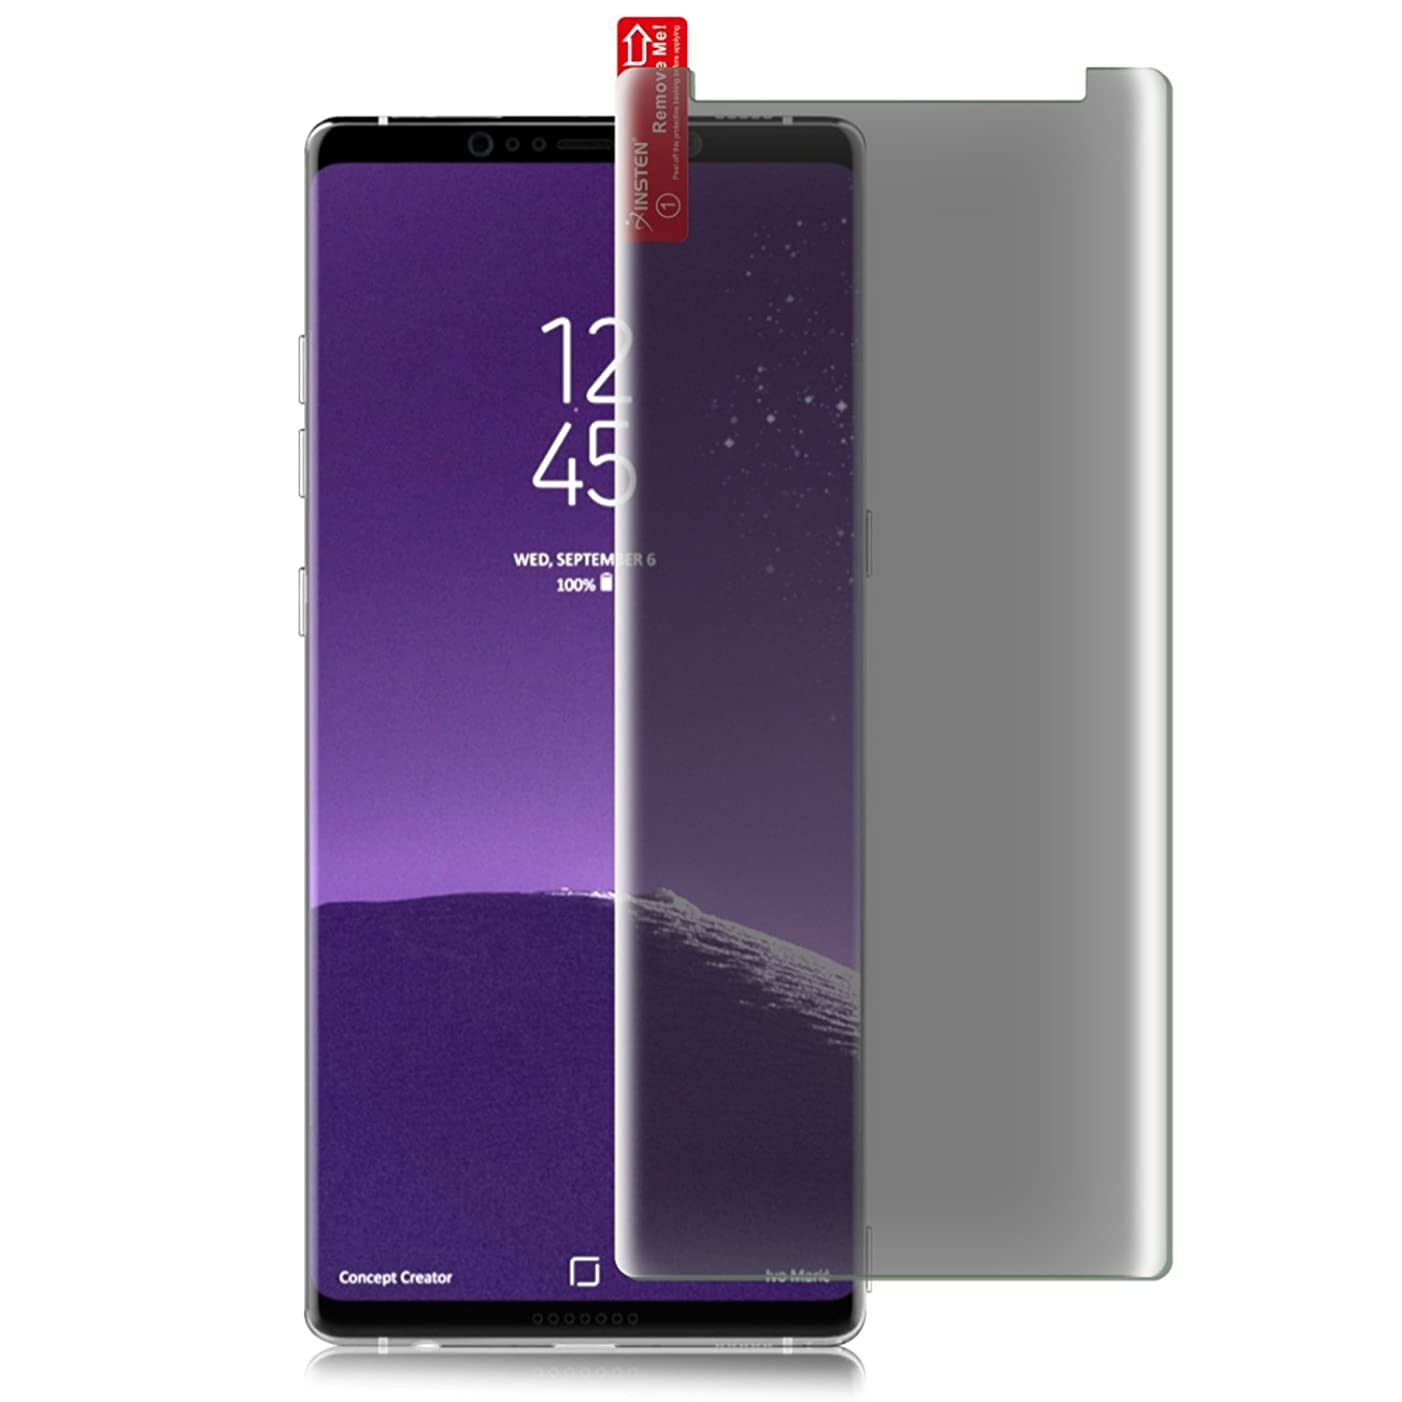 Compatible with Samsung Galaxy Note 8 Screen Protector, Insten [2-Pack] Privacy Anti-Spy 9H Hardness Tempered Glass Full Screen Coverage/Bubble-Free/Anti-Scratch Compatible with Samsung Galaxy Note 8